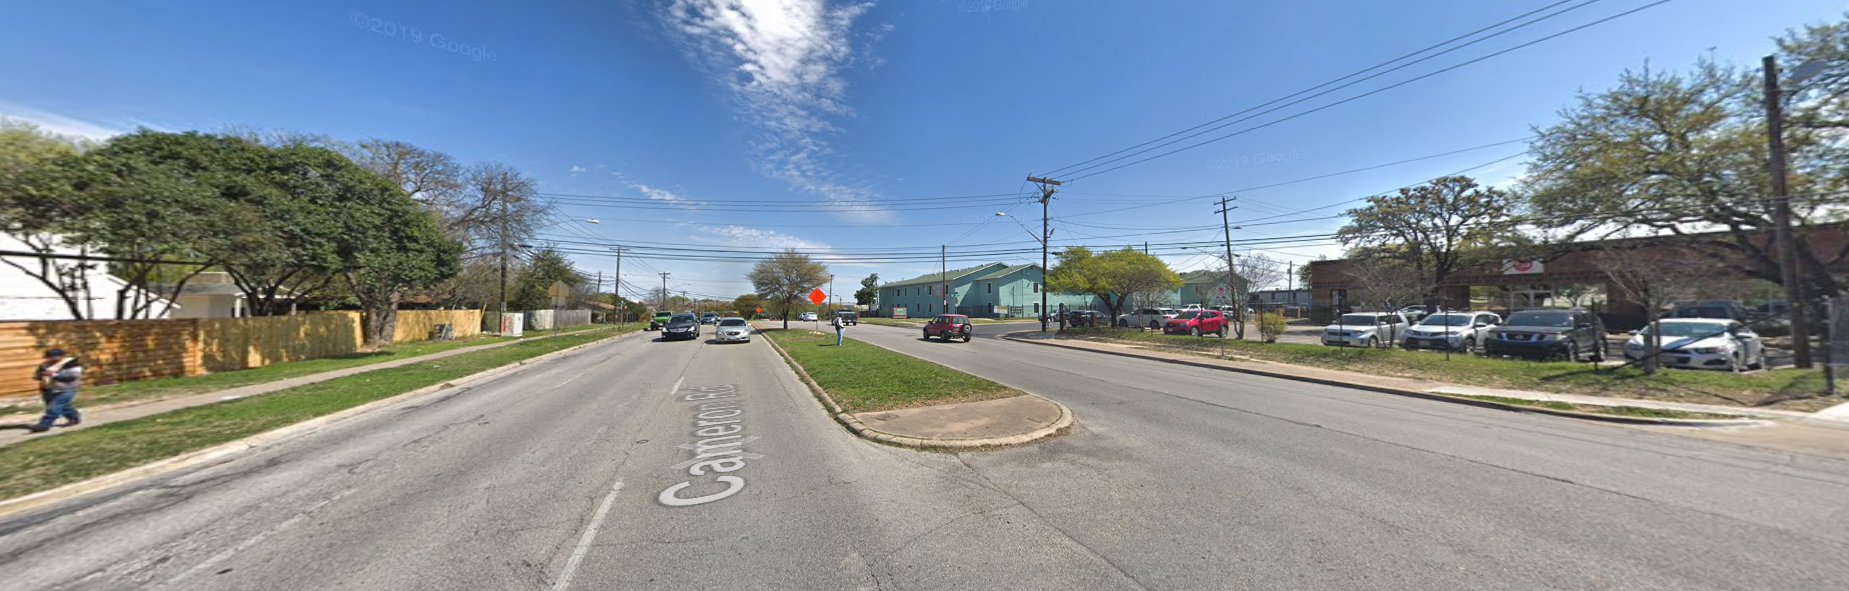 Image of Cameron Road with six travel lanes, three in each direction divided by a median, and no bicycle lanes